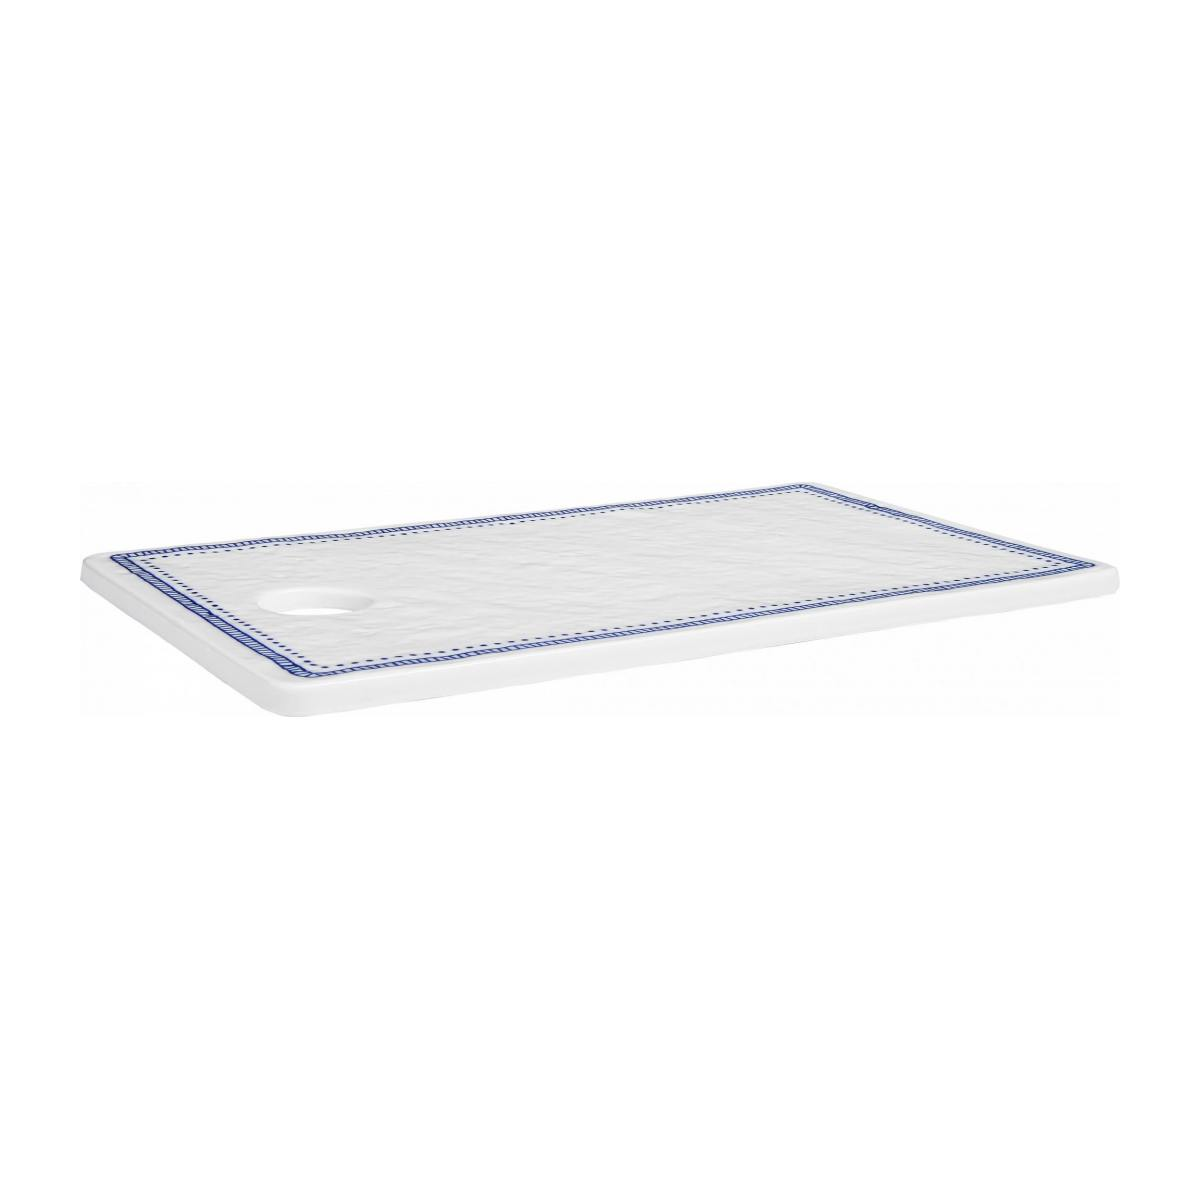 Chopping board made of porcelain 17x29cm, white and blue n°1